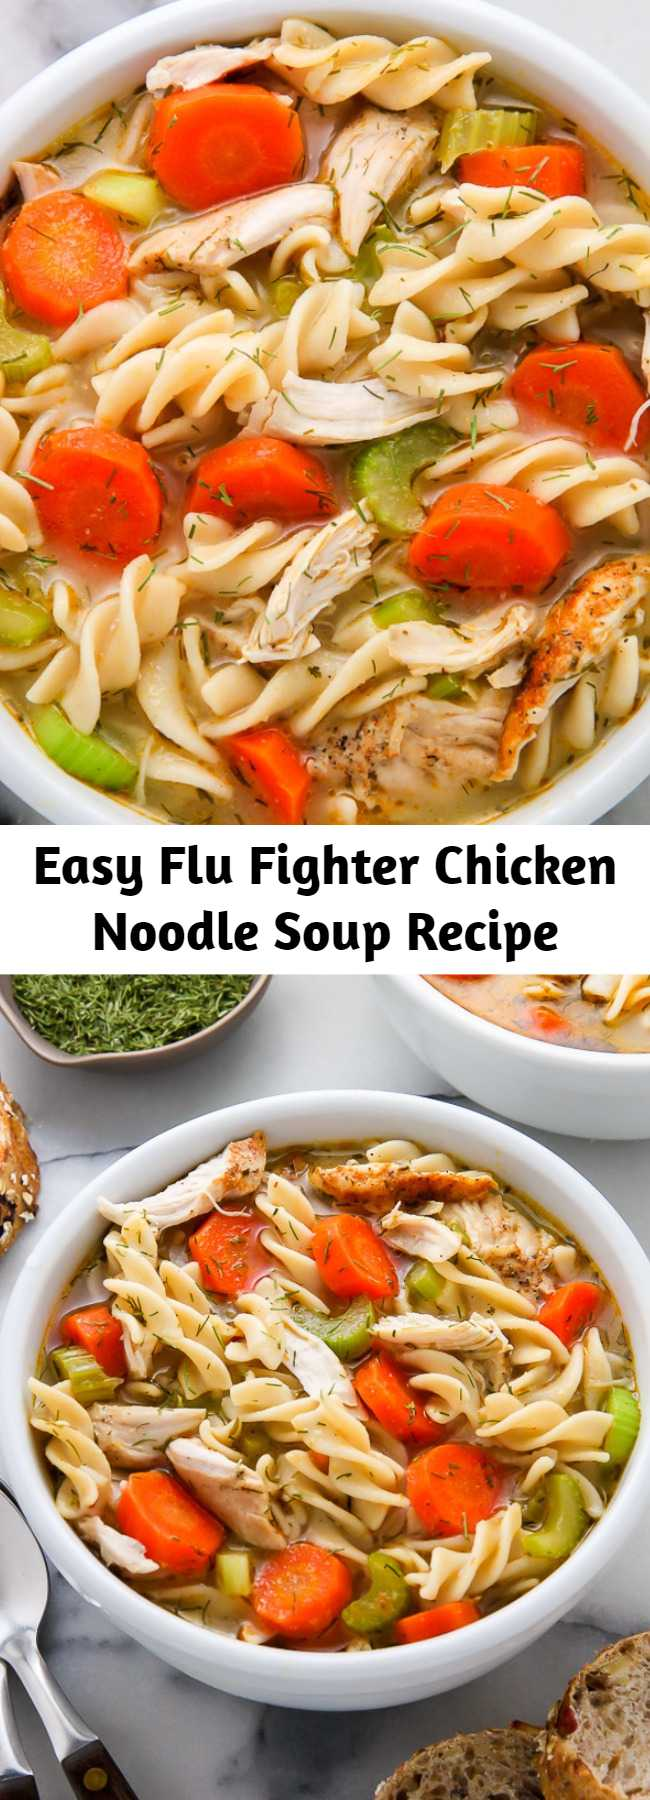 Easy Flu Fighter Chicken Noodle Soup Recipe - Got a cold? Then you need to try this Flu Fighter Chicken Noodle Soup! Flu Fighter Chicken Noodle Soup is the ultimate comfort food when you're feeling sick! Loaded with tender chicken, carrots, celery, onion, egg noodles, lemon juice, and dill, this soup is so flavorful. Even kids love this healthy recipe!